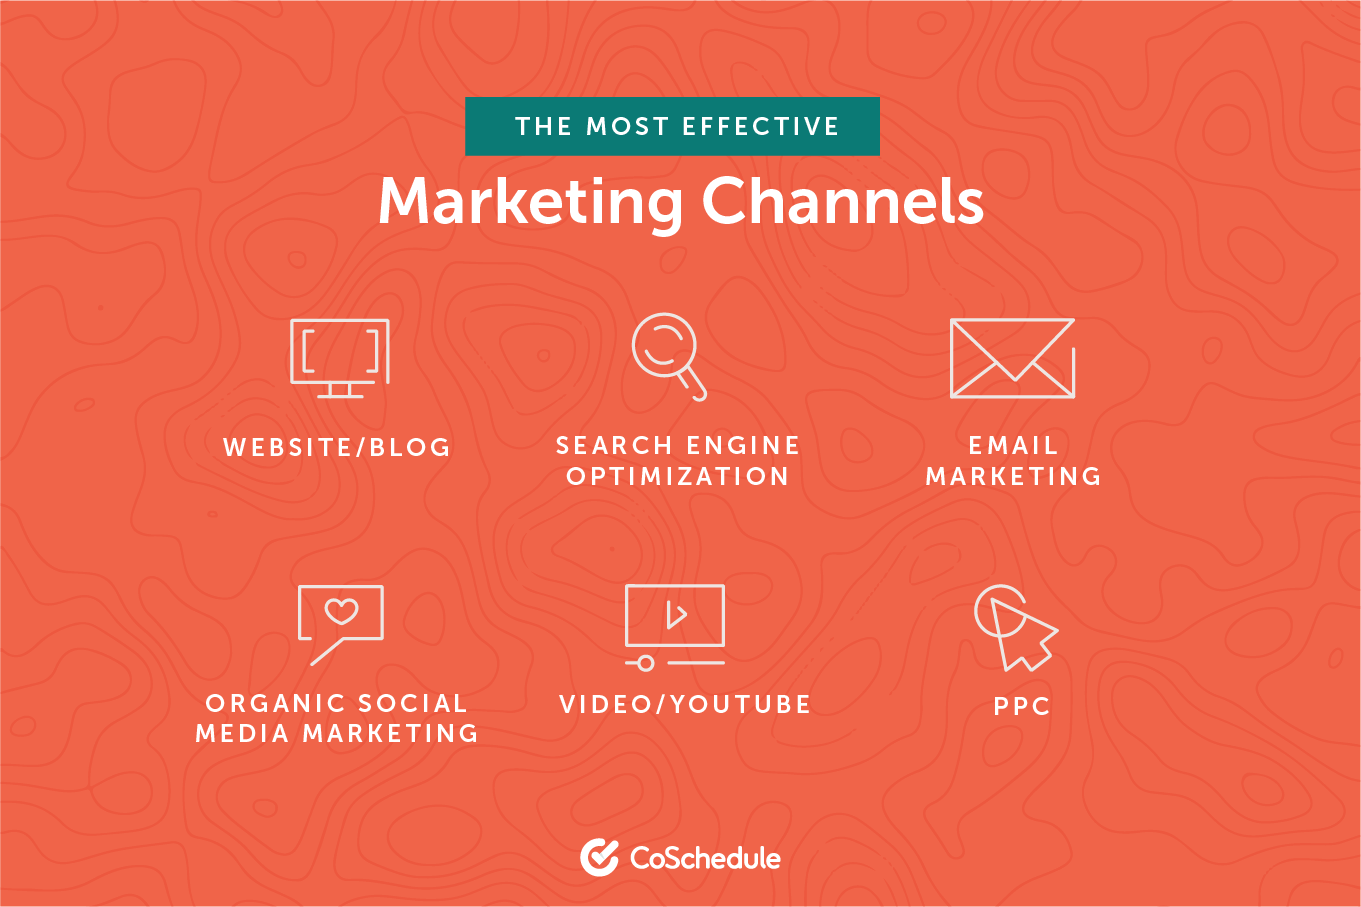 List of the most effective marketing channels